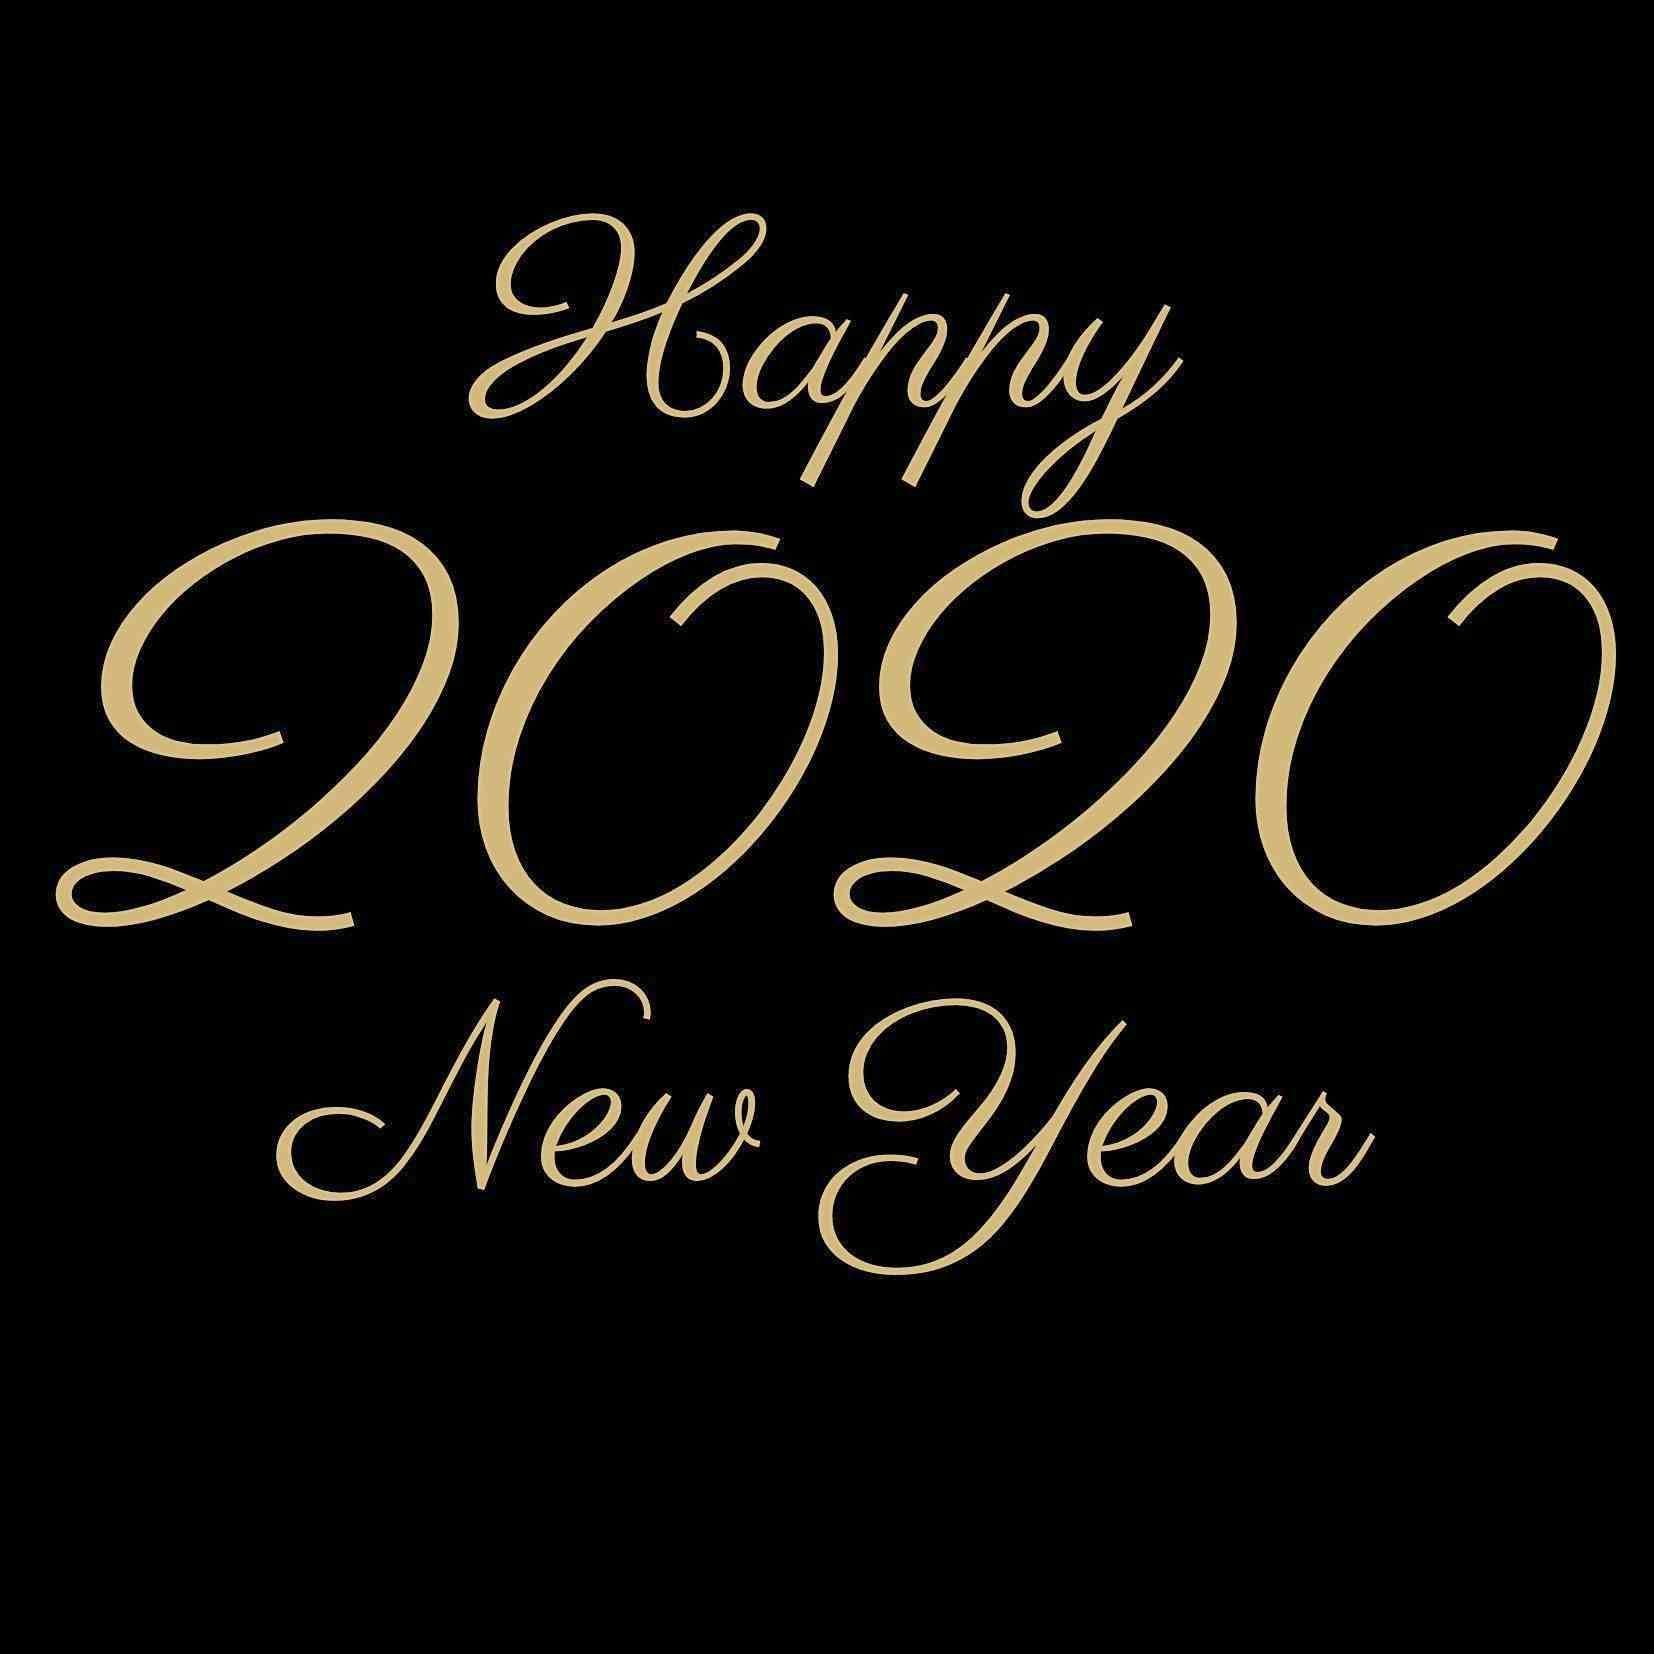 New years eve pics 2020 hd free for instagram, facebook